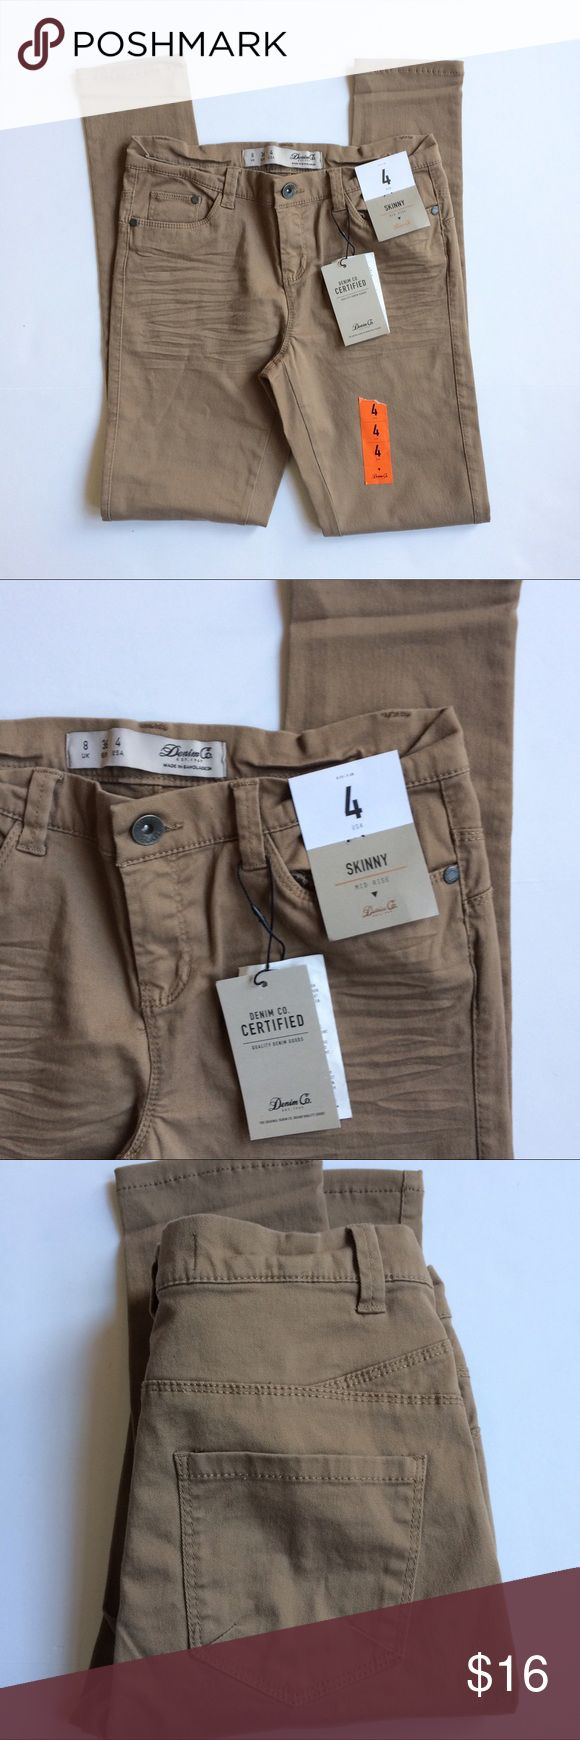 🆕 Skinny Khakis New with tags, skinny khaki pants with very stretchy material. Mid Rise. Waist measures 26 inches, inseam measures 29 inches. Pants Skinny